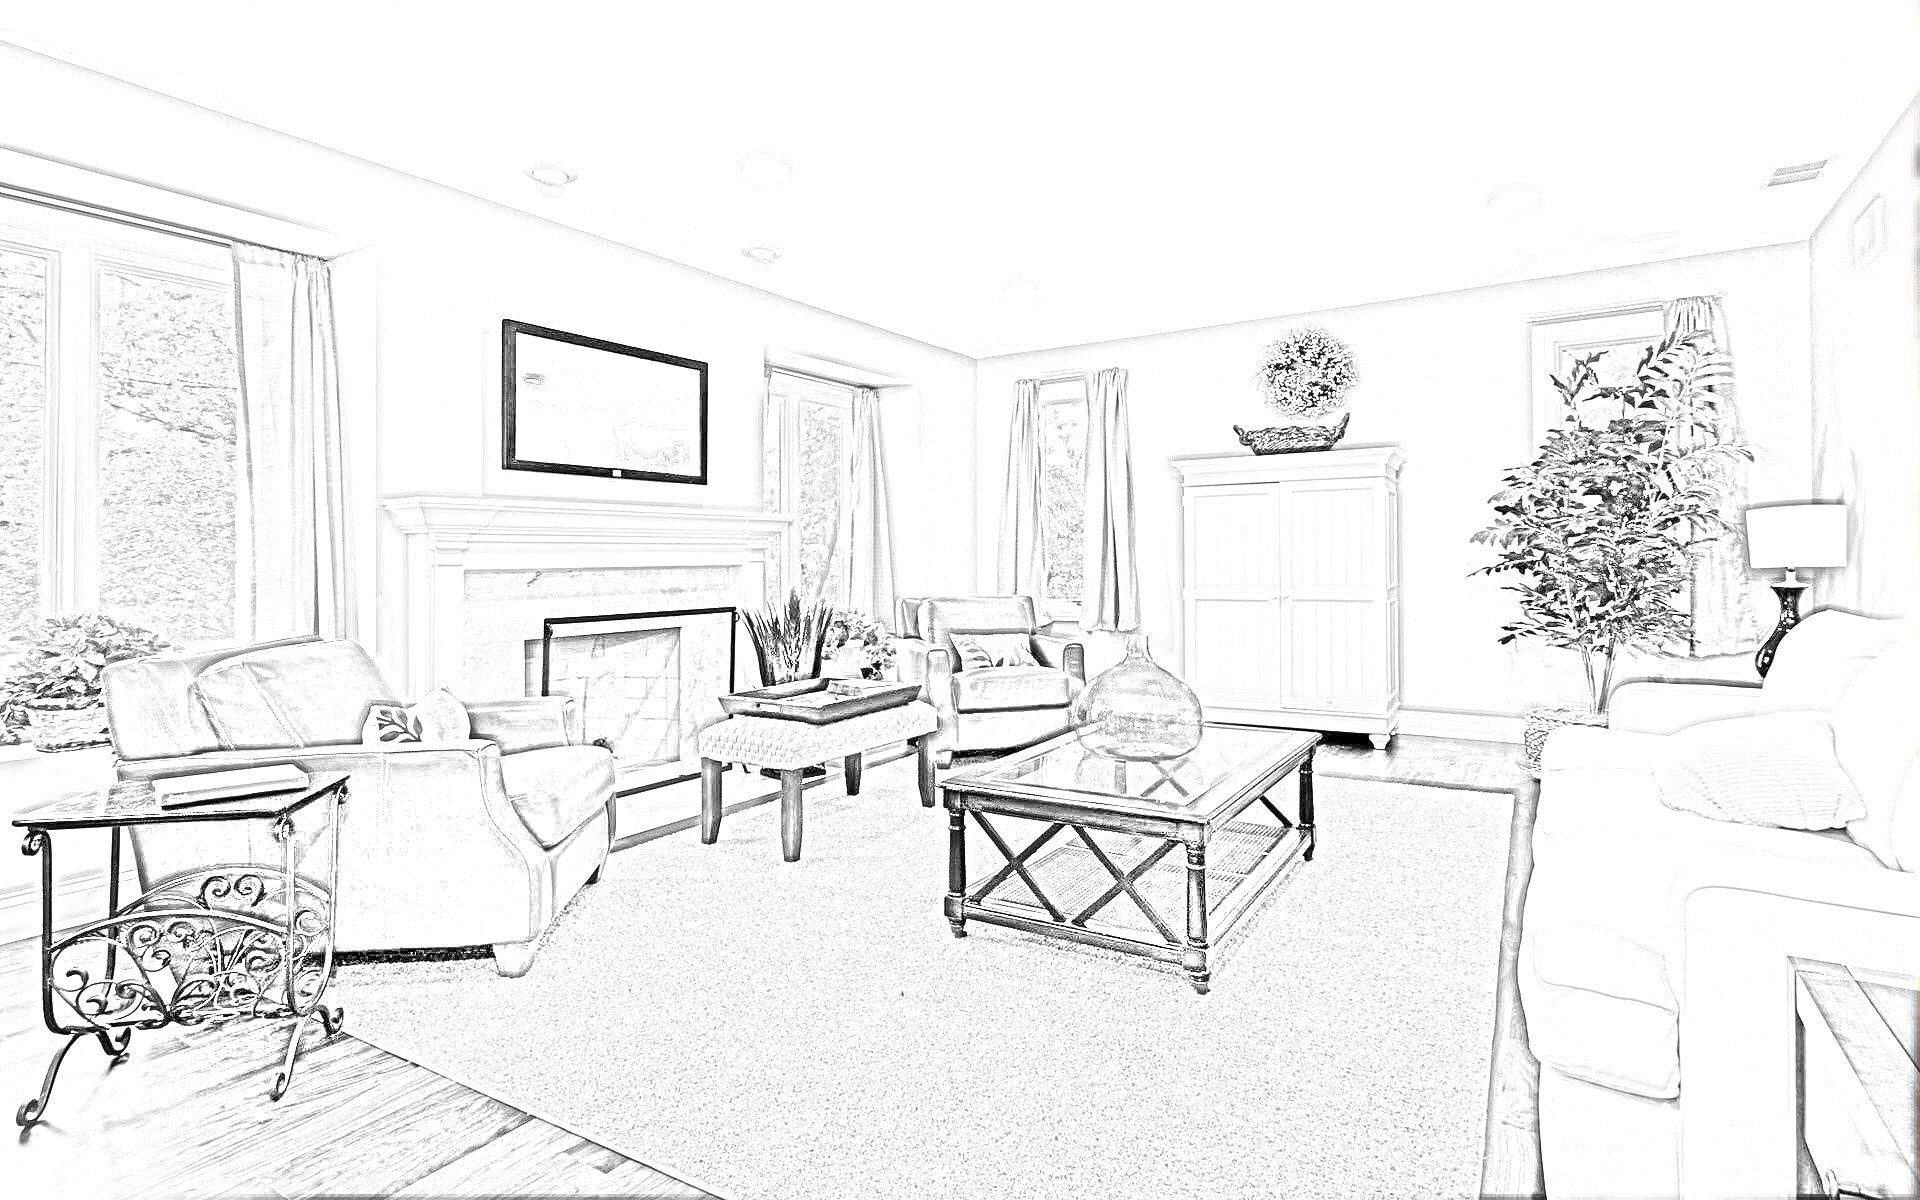 Living room drawing design - How To Do Interior Design Sketches Bqtmpph